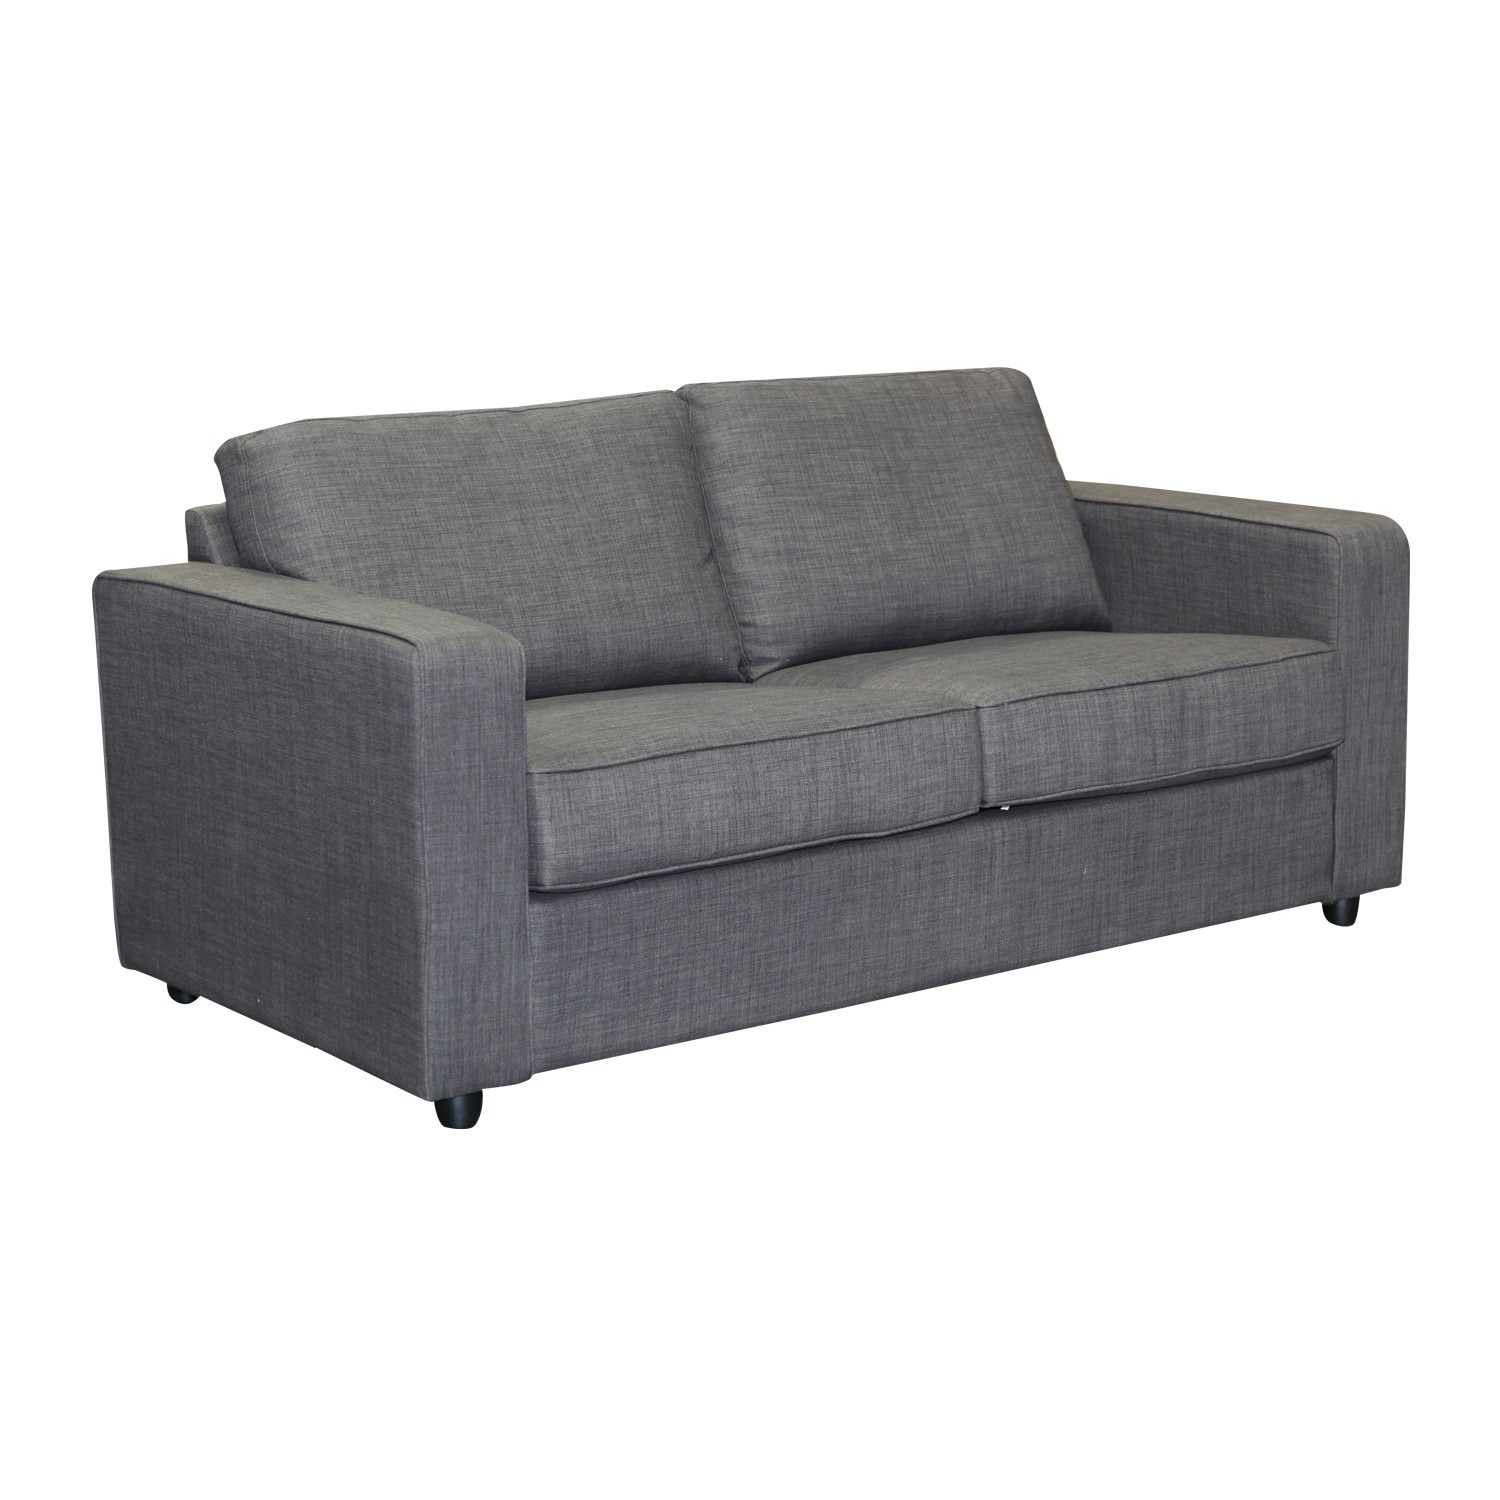 Sorrento Fabirc Pull Out Sofa Bed